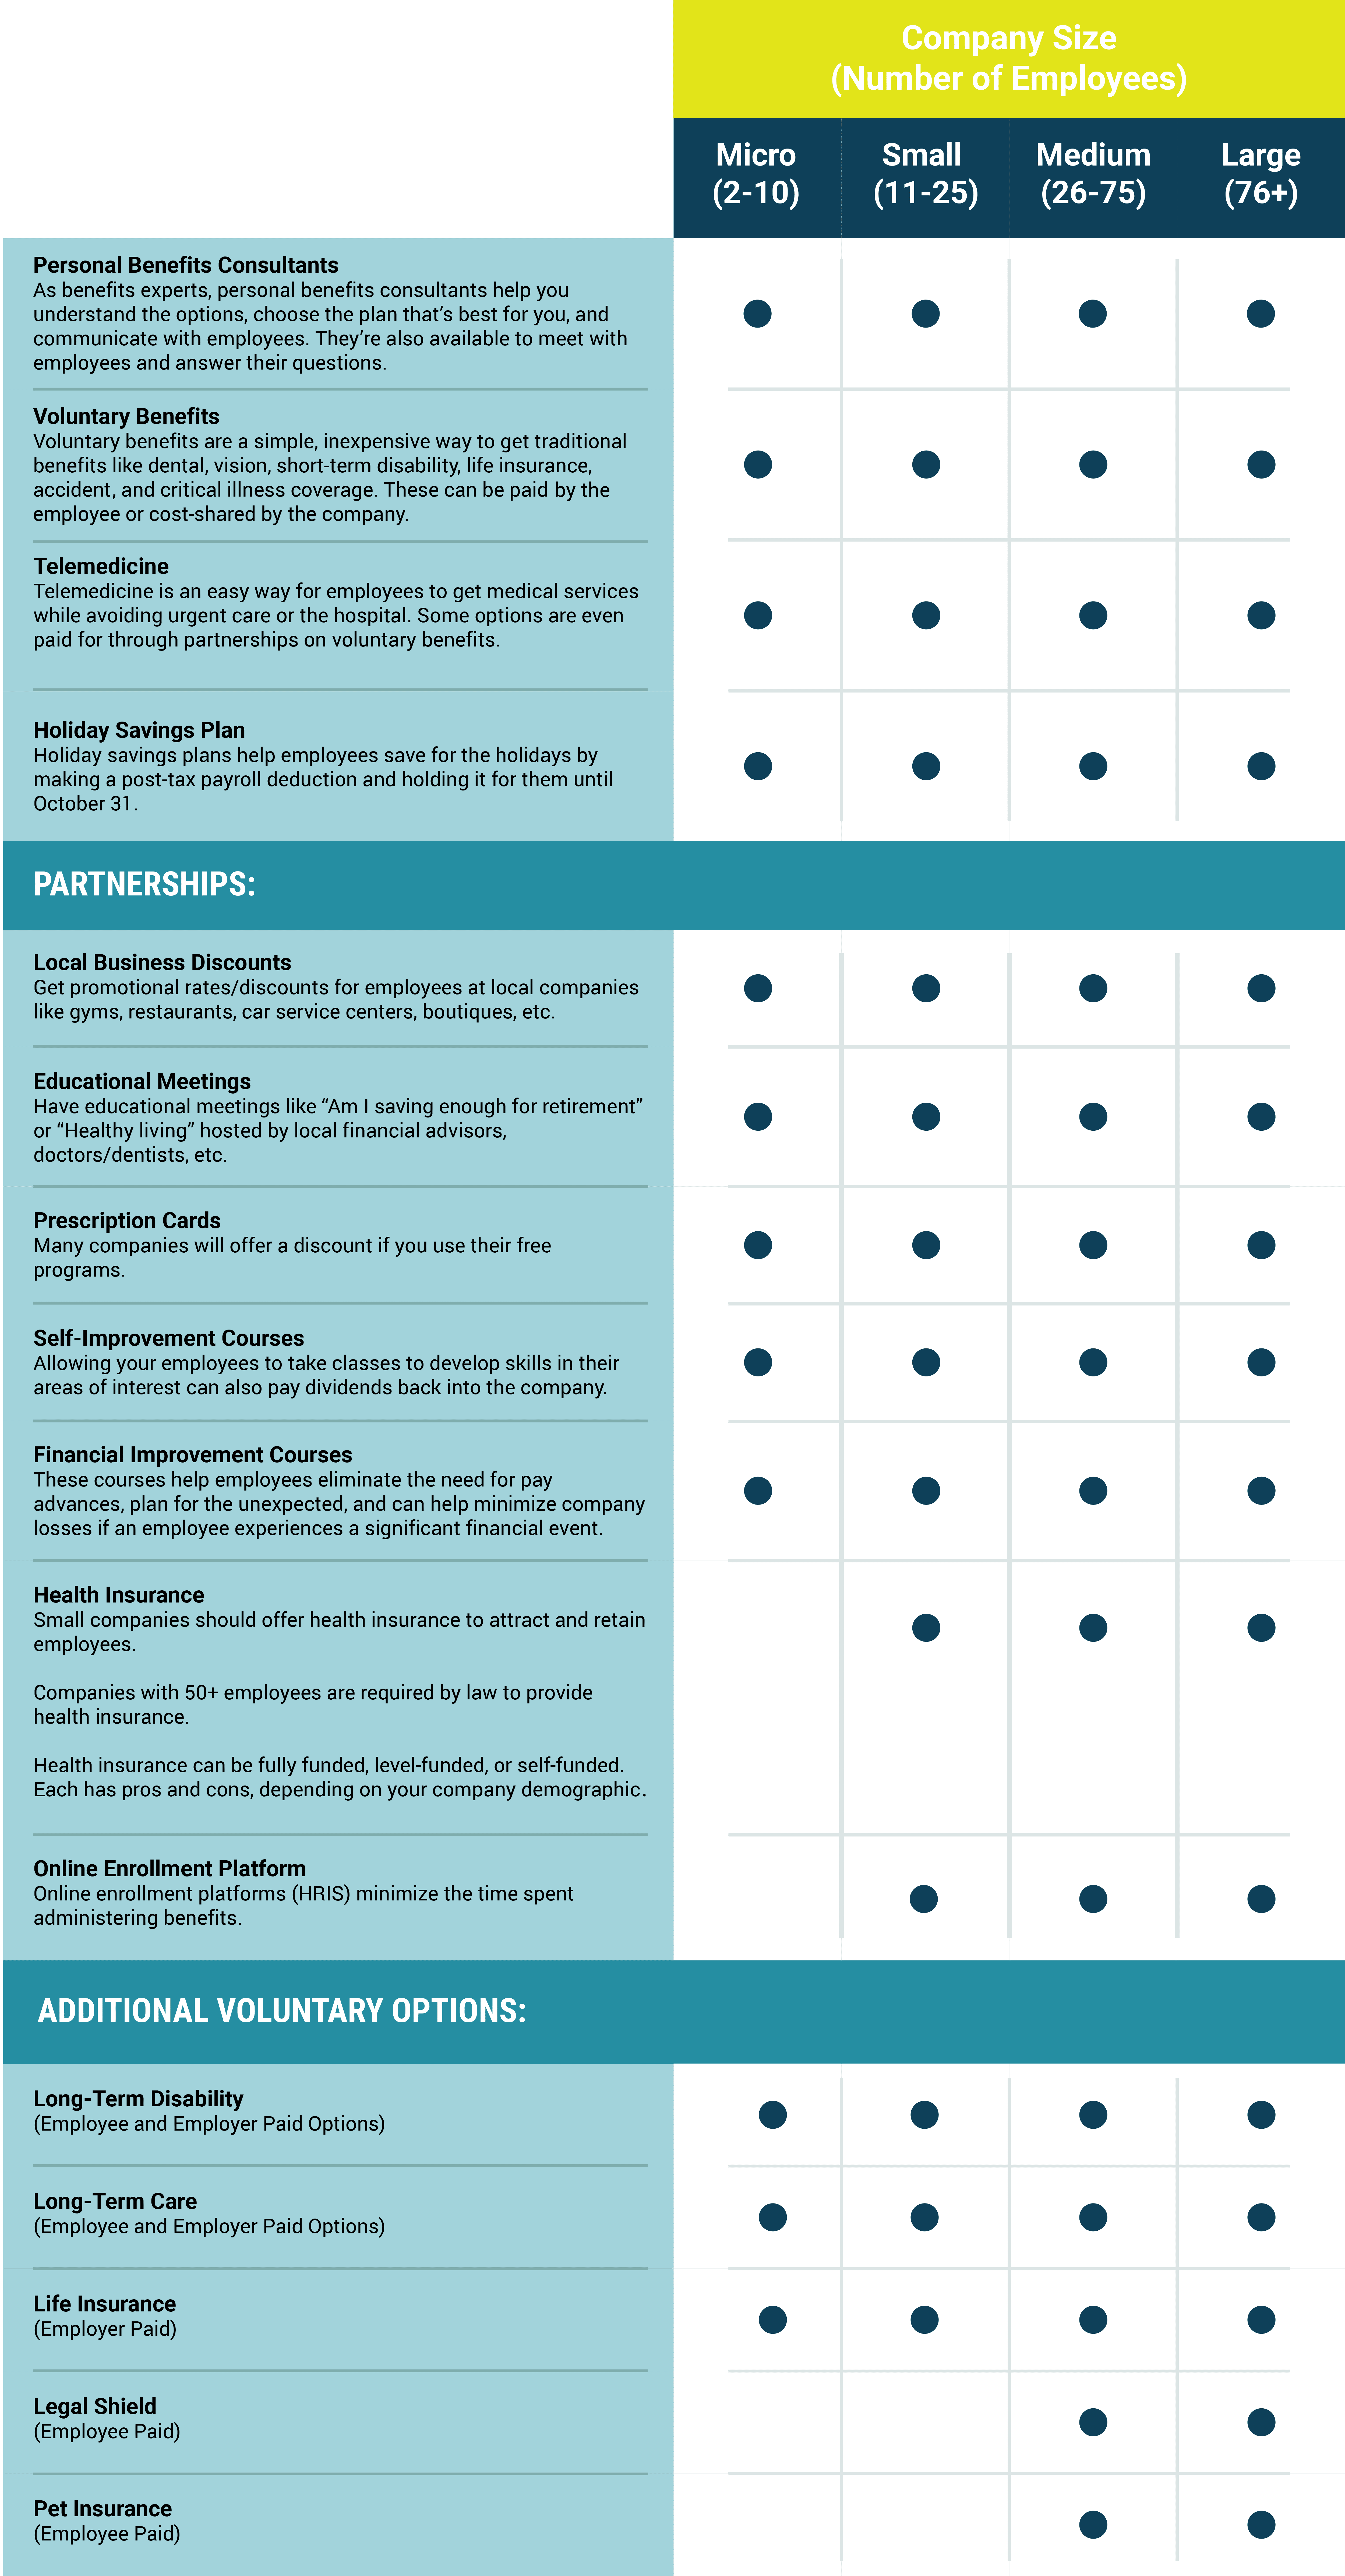 This chart is a detailed guide on how to design an employee benefits program